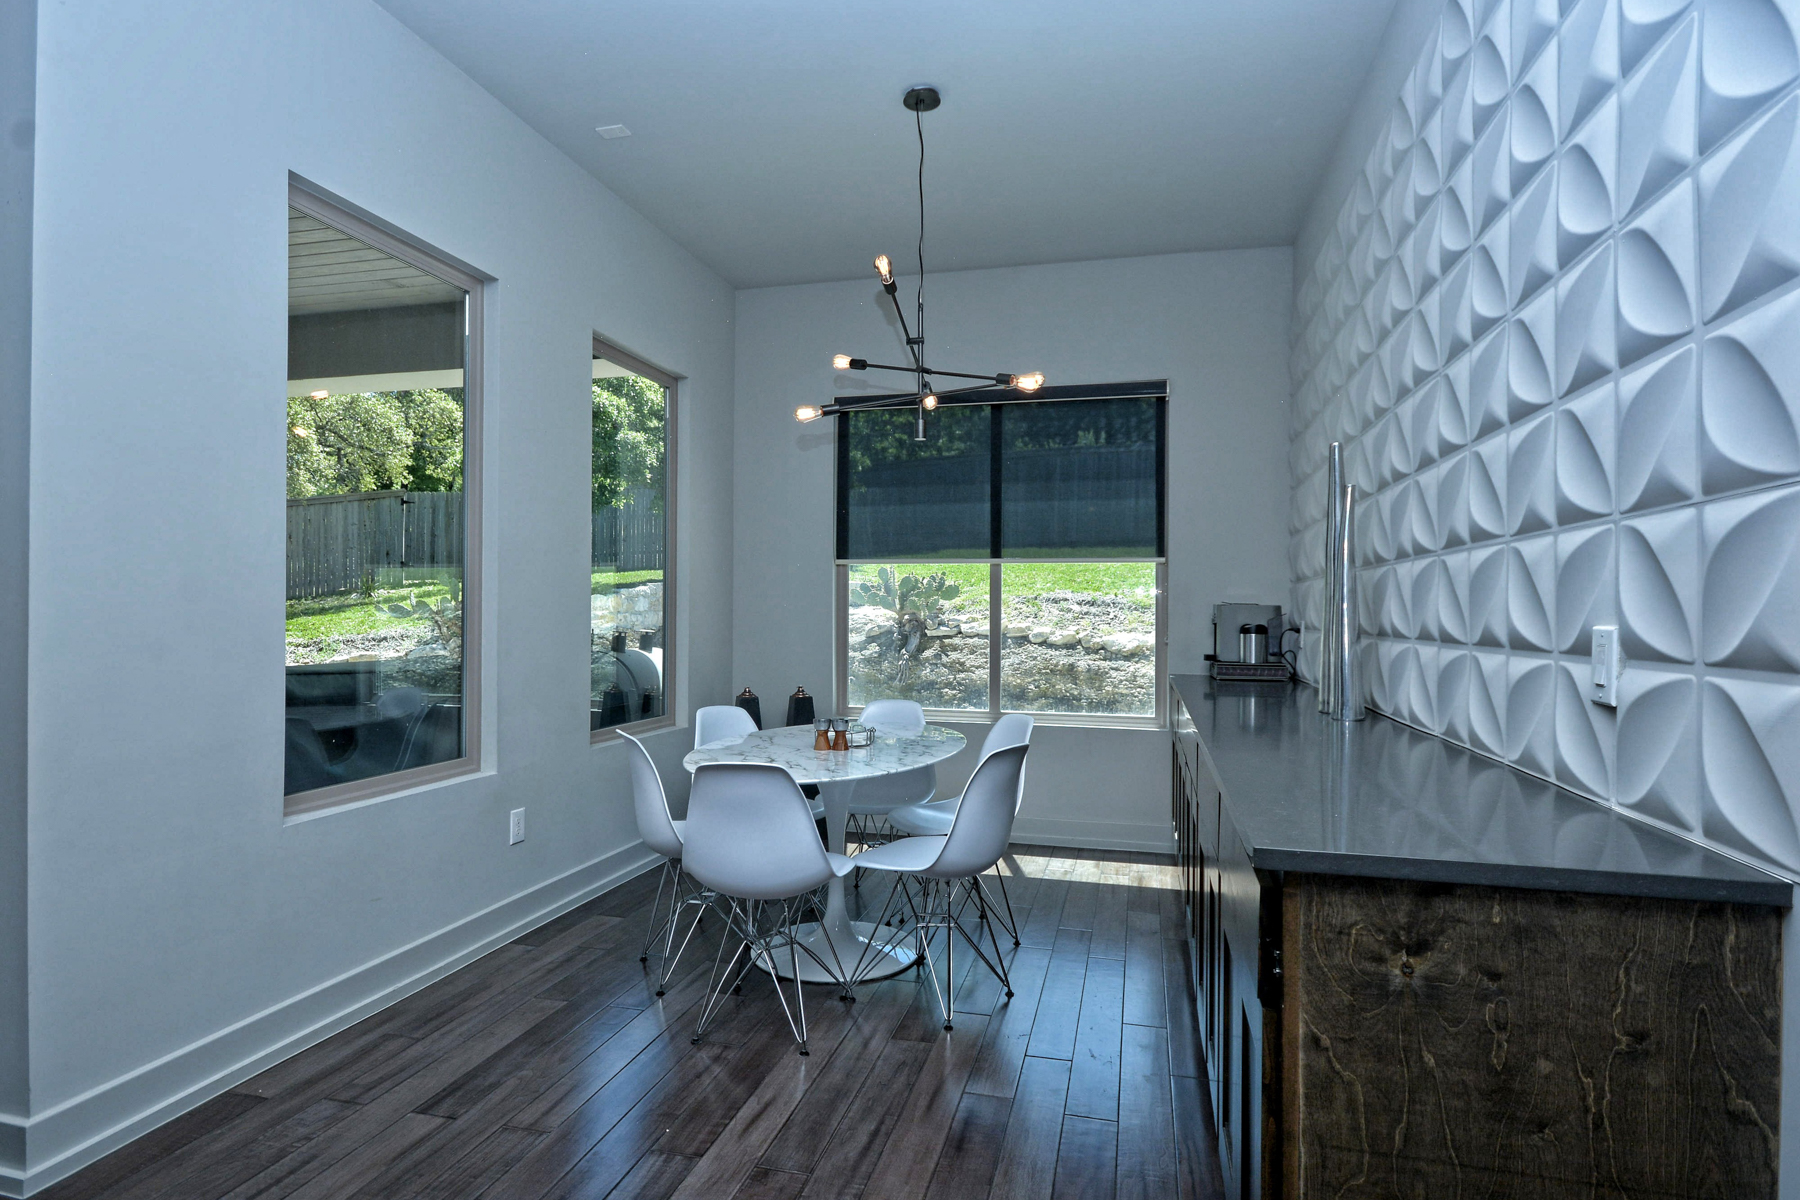 Additional photo for property listing at Stunning and Contemporary Home in Cresta Bella 7010 Cresta Bulivar San Antonio, Texas 78256 Estados Unidos